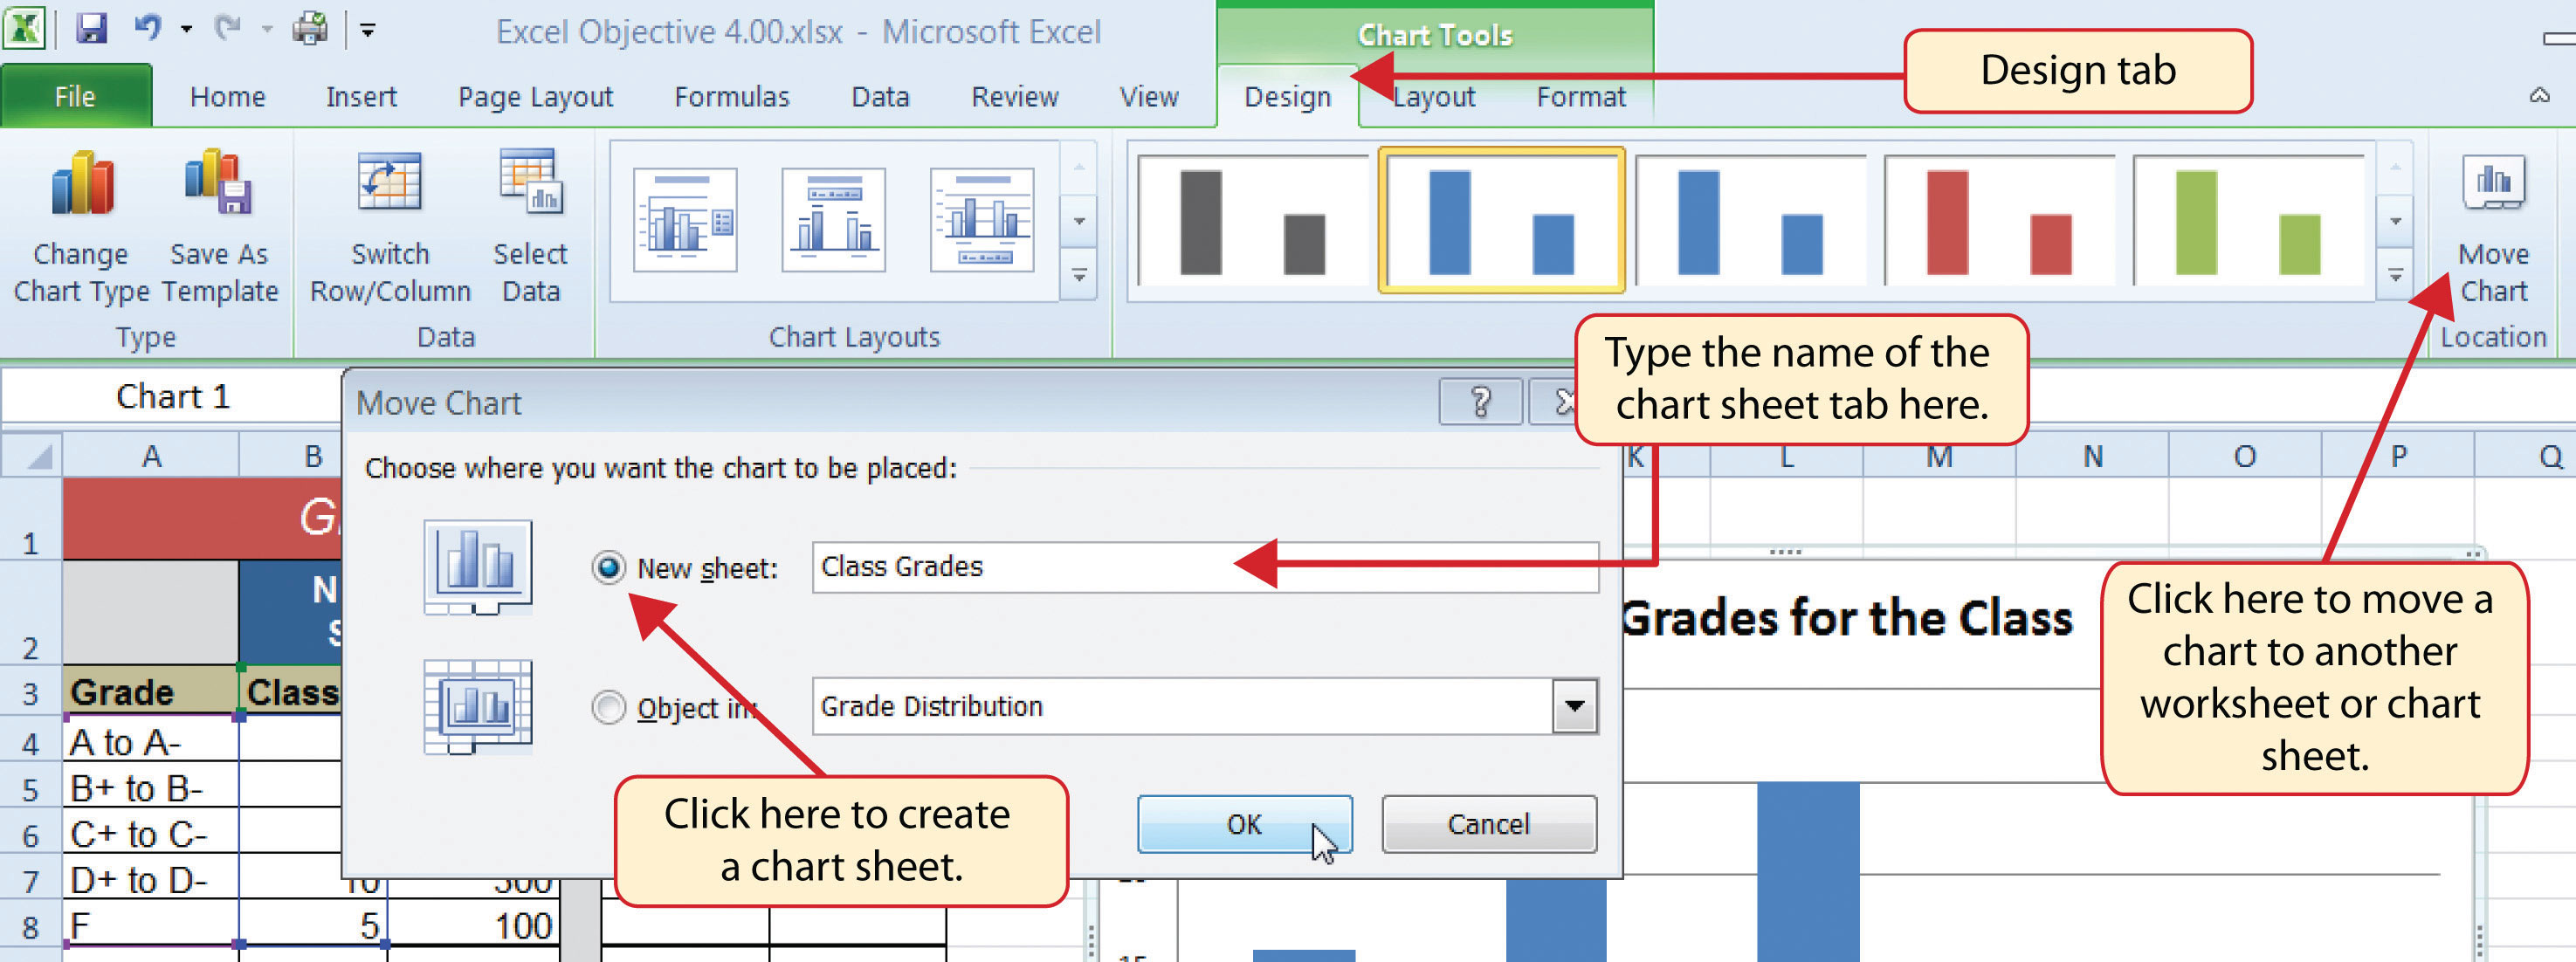 Worksheet Insert A New Worksheet In Excel Grass Fedjp Worksheet Study Site